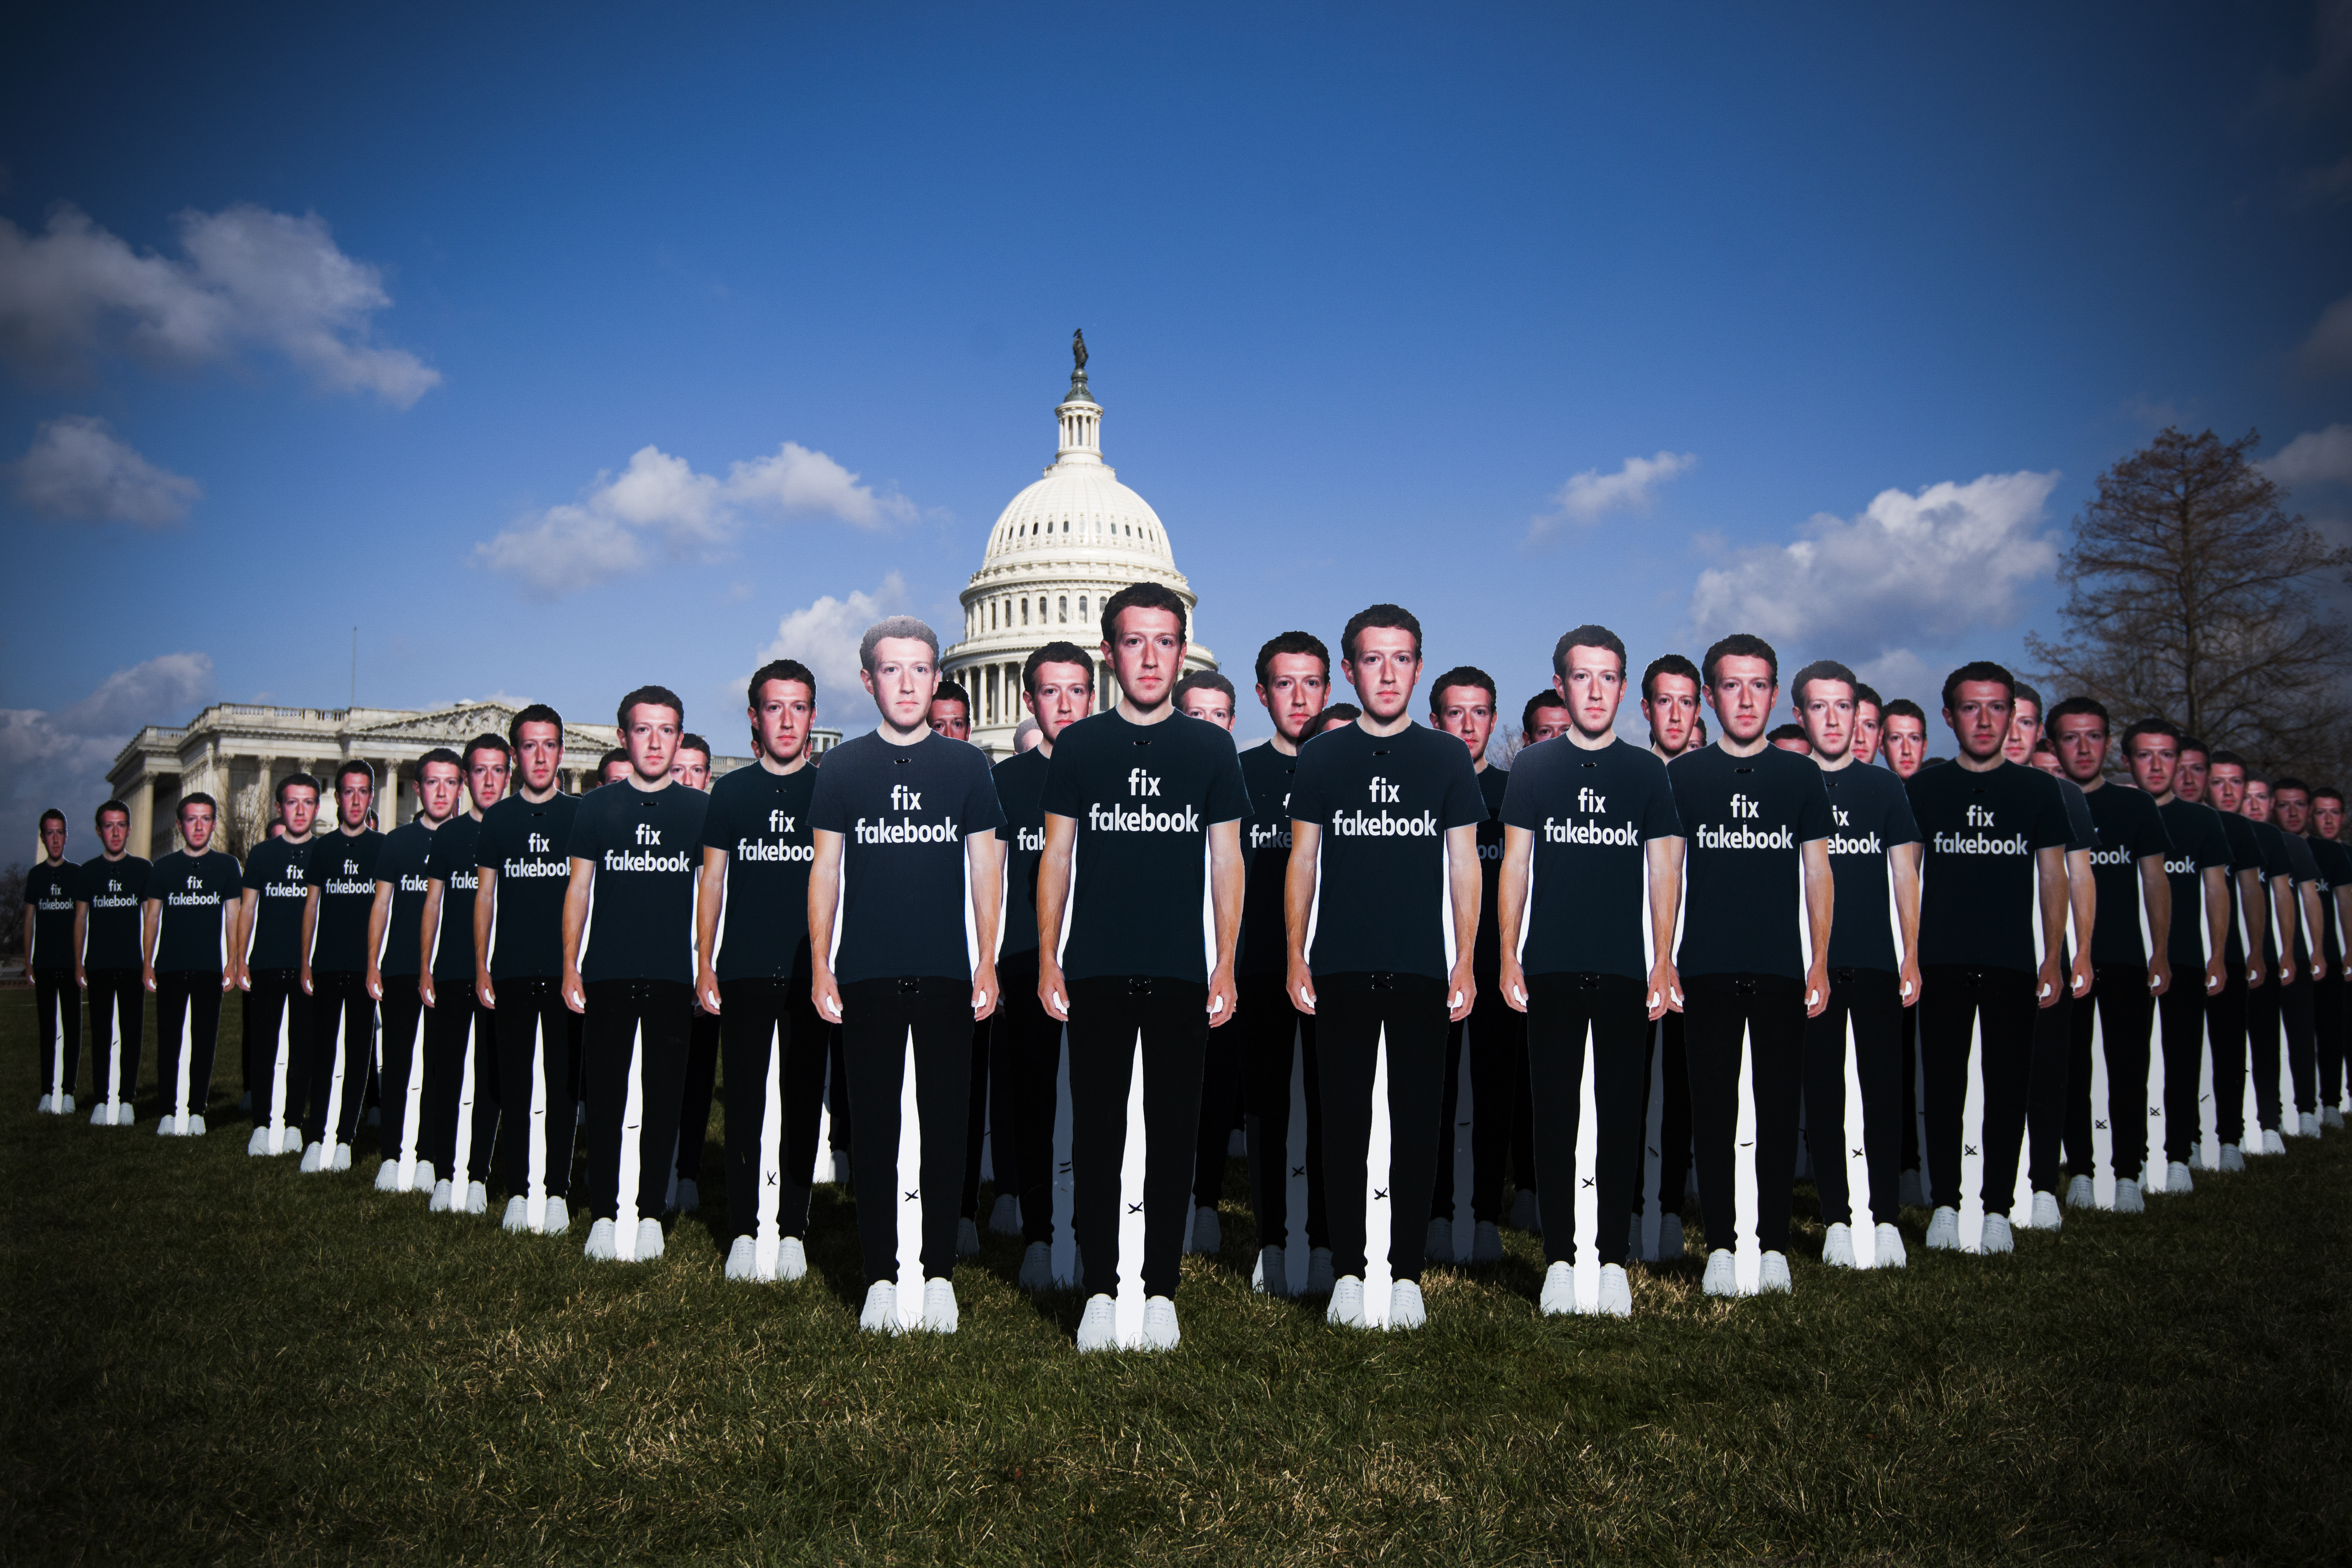 """Cutouts of Facebook CEO Mark Zuckerberg on the east lawn of the Capitol. His shirts all read, """"Fix Fakebook."""""""